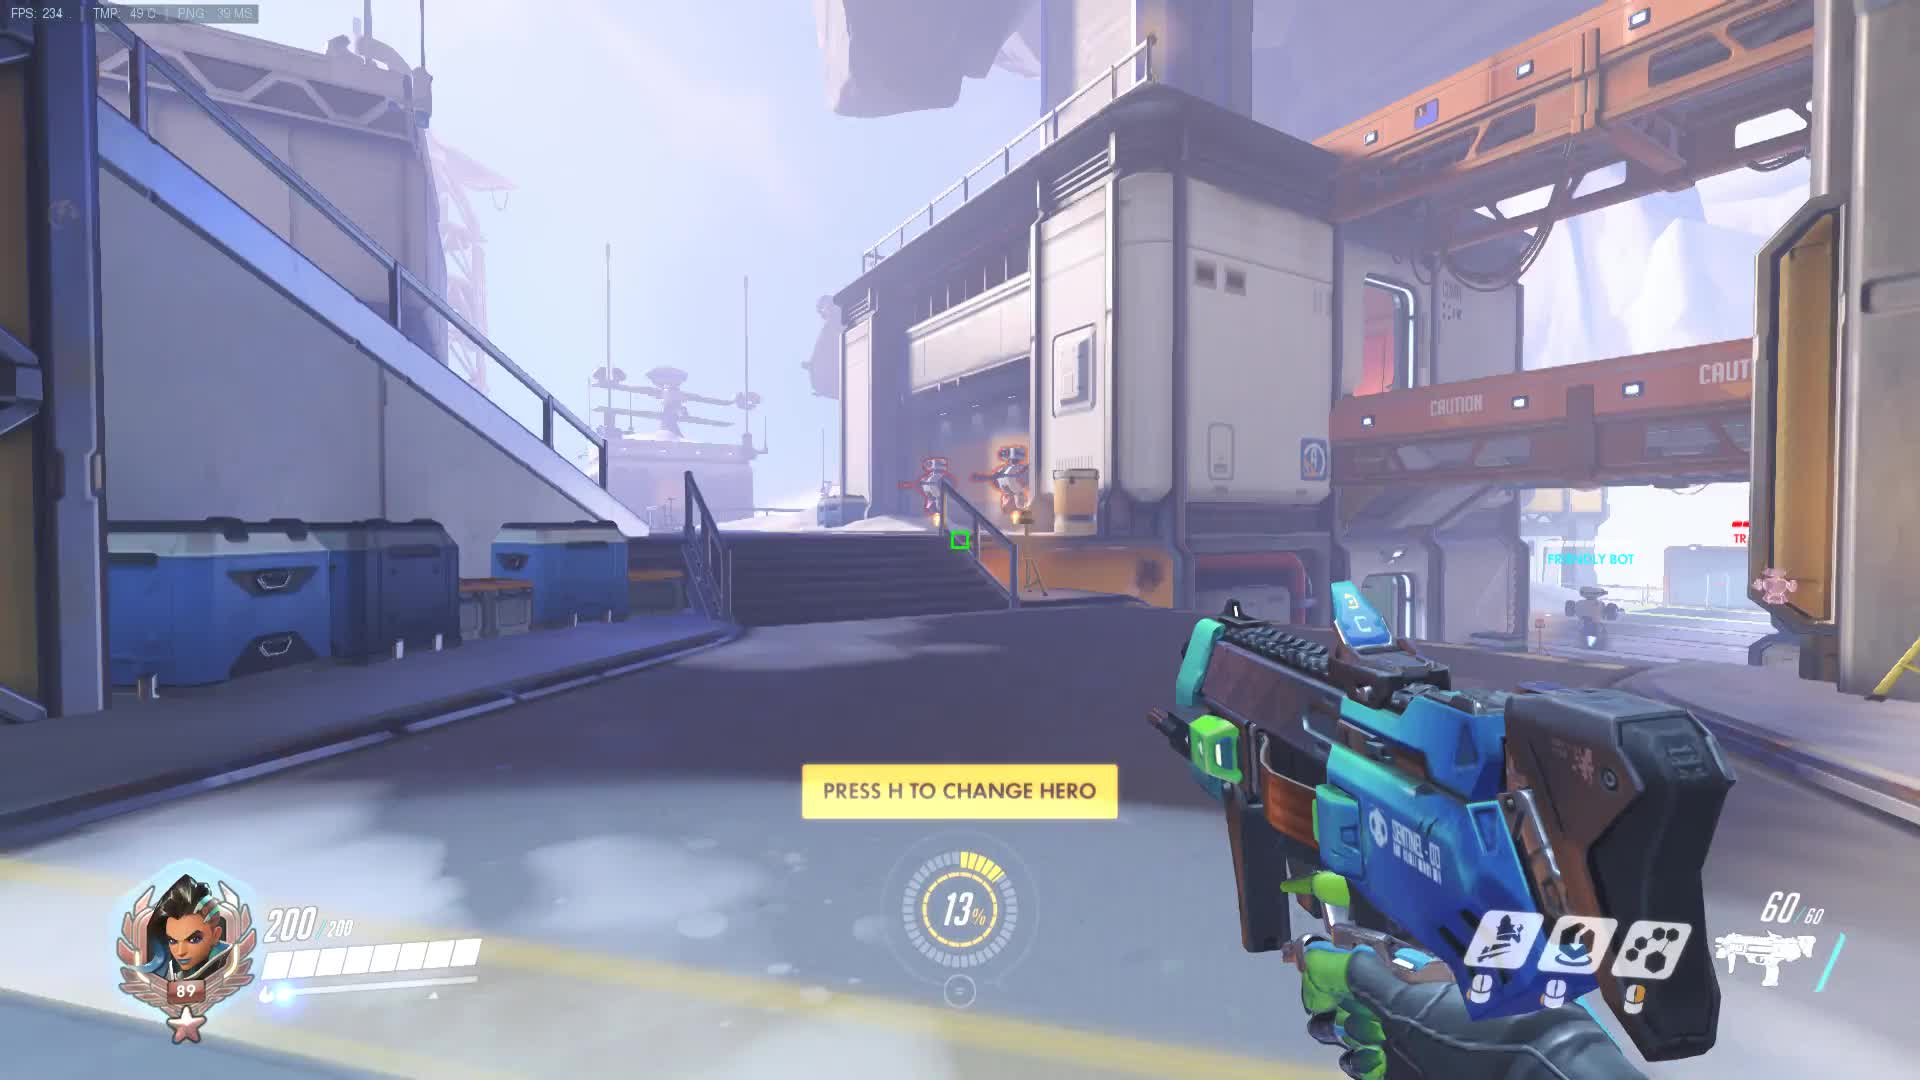 Sombra Dynamic Square Crosshair Boxhair Overwatch